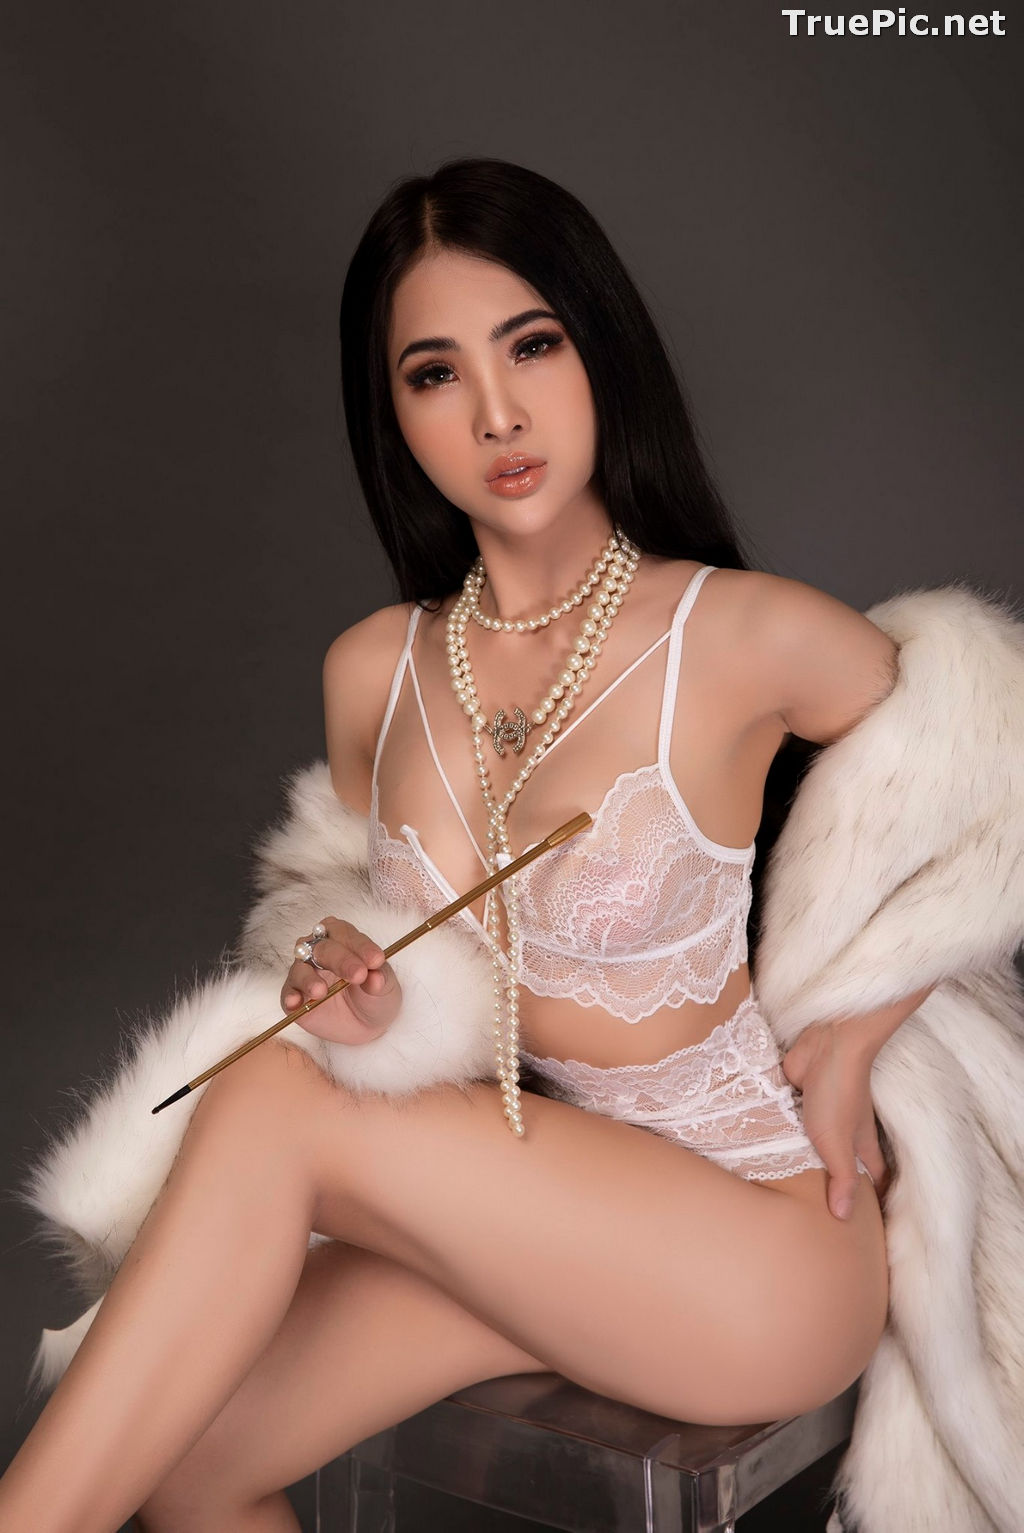 Image Vietnamese Model - Hot Beautiful Girls In White Collection - TruePic.net - Picture-5